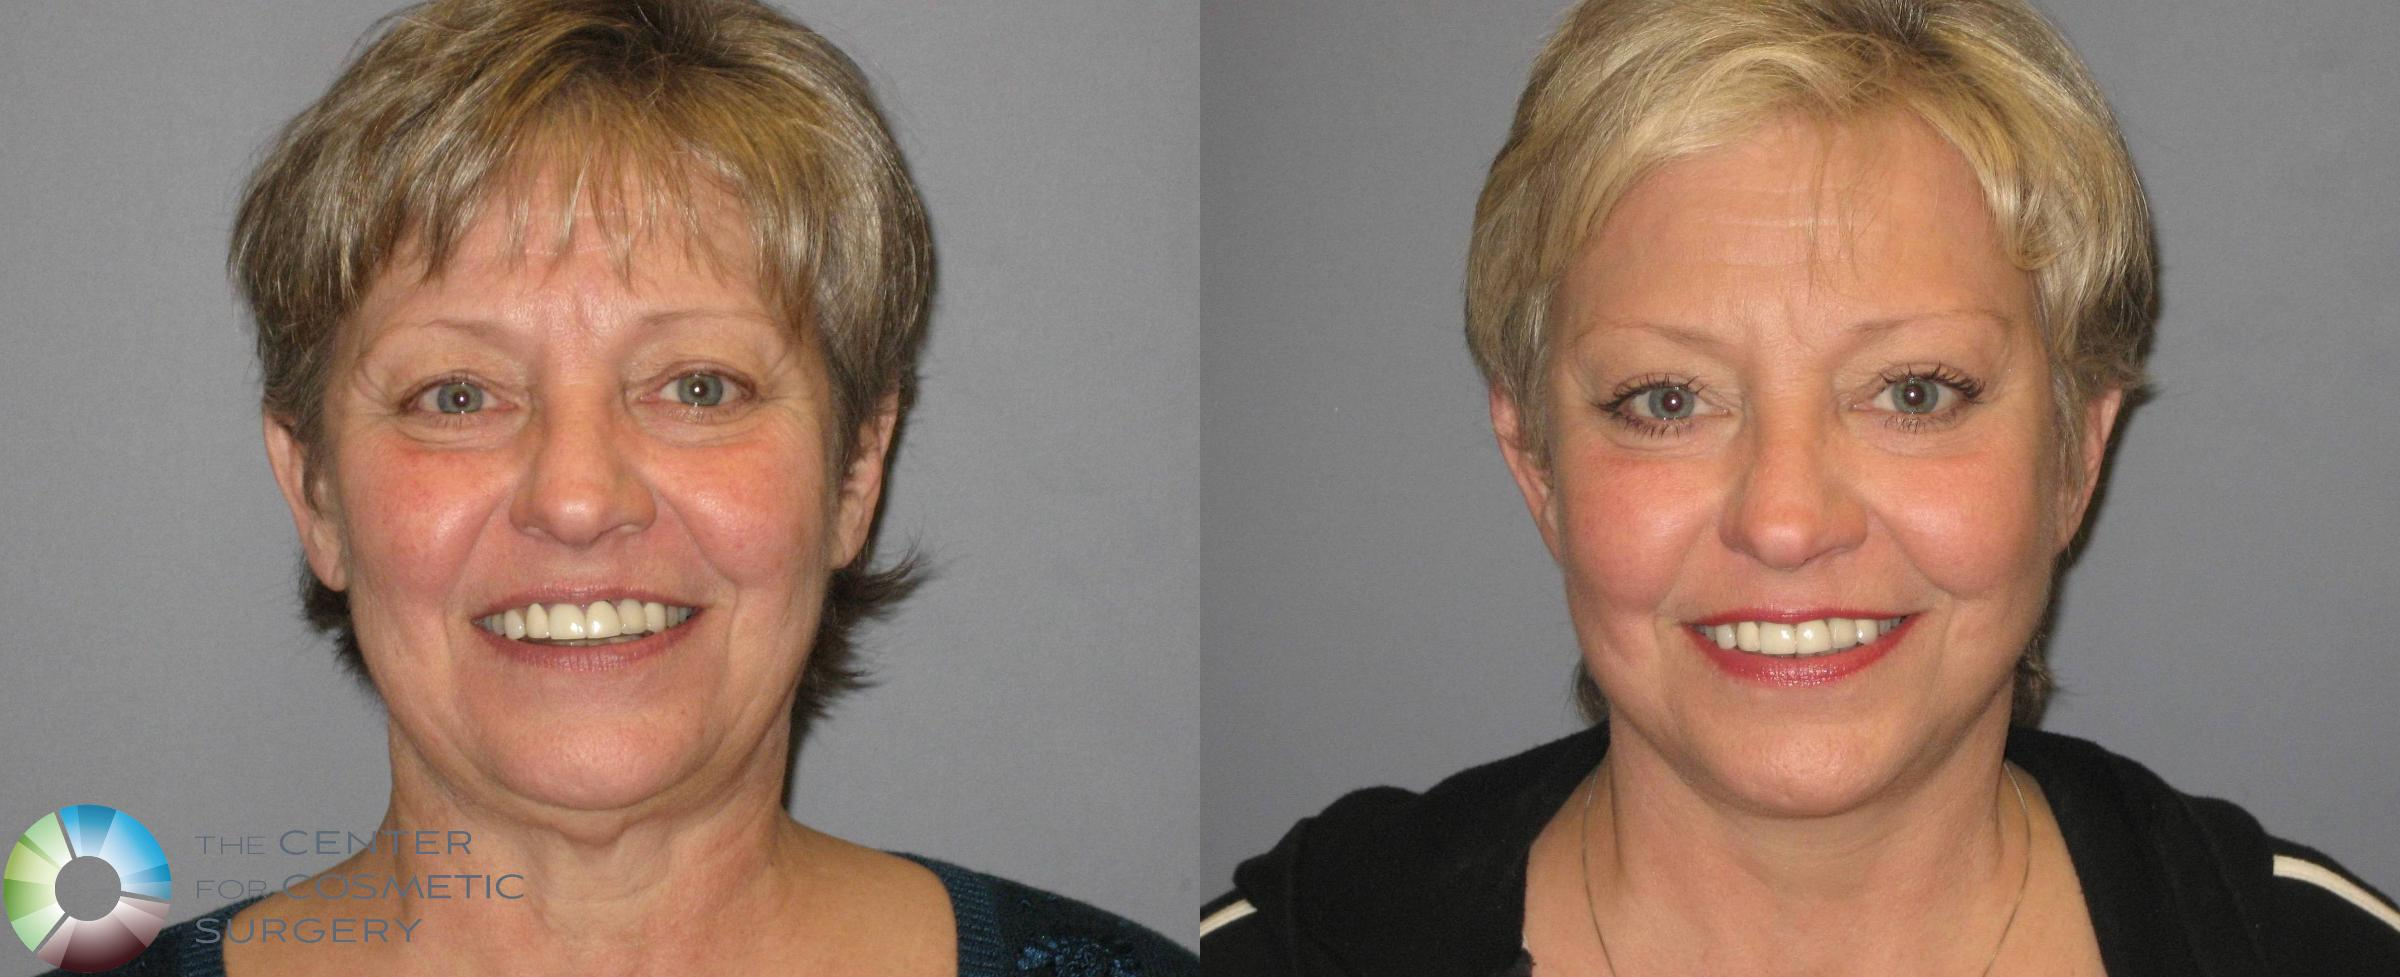 Mini Facelift Case 342 Before & After View #1 | Golden, CO | The Center for Cosmetic Surgery